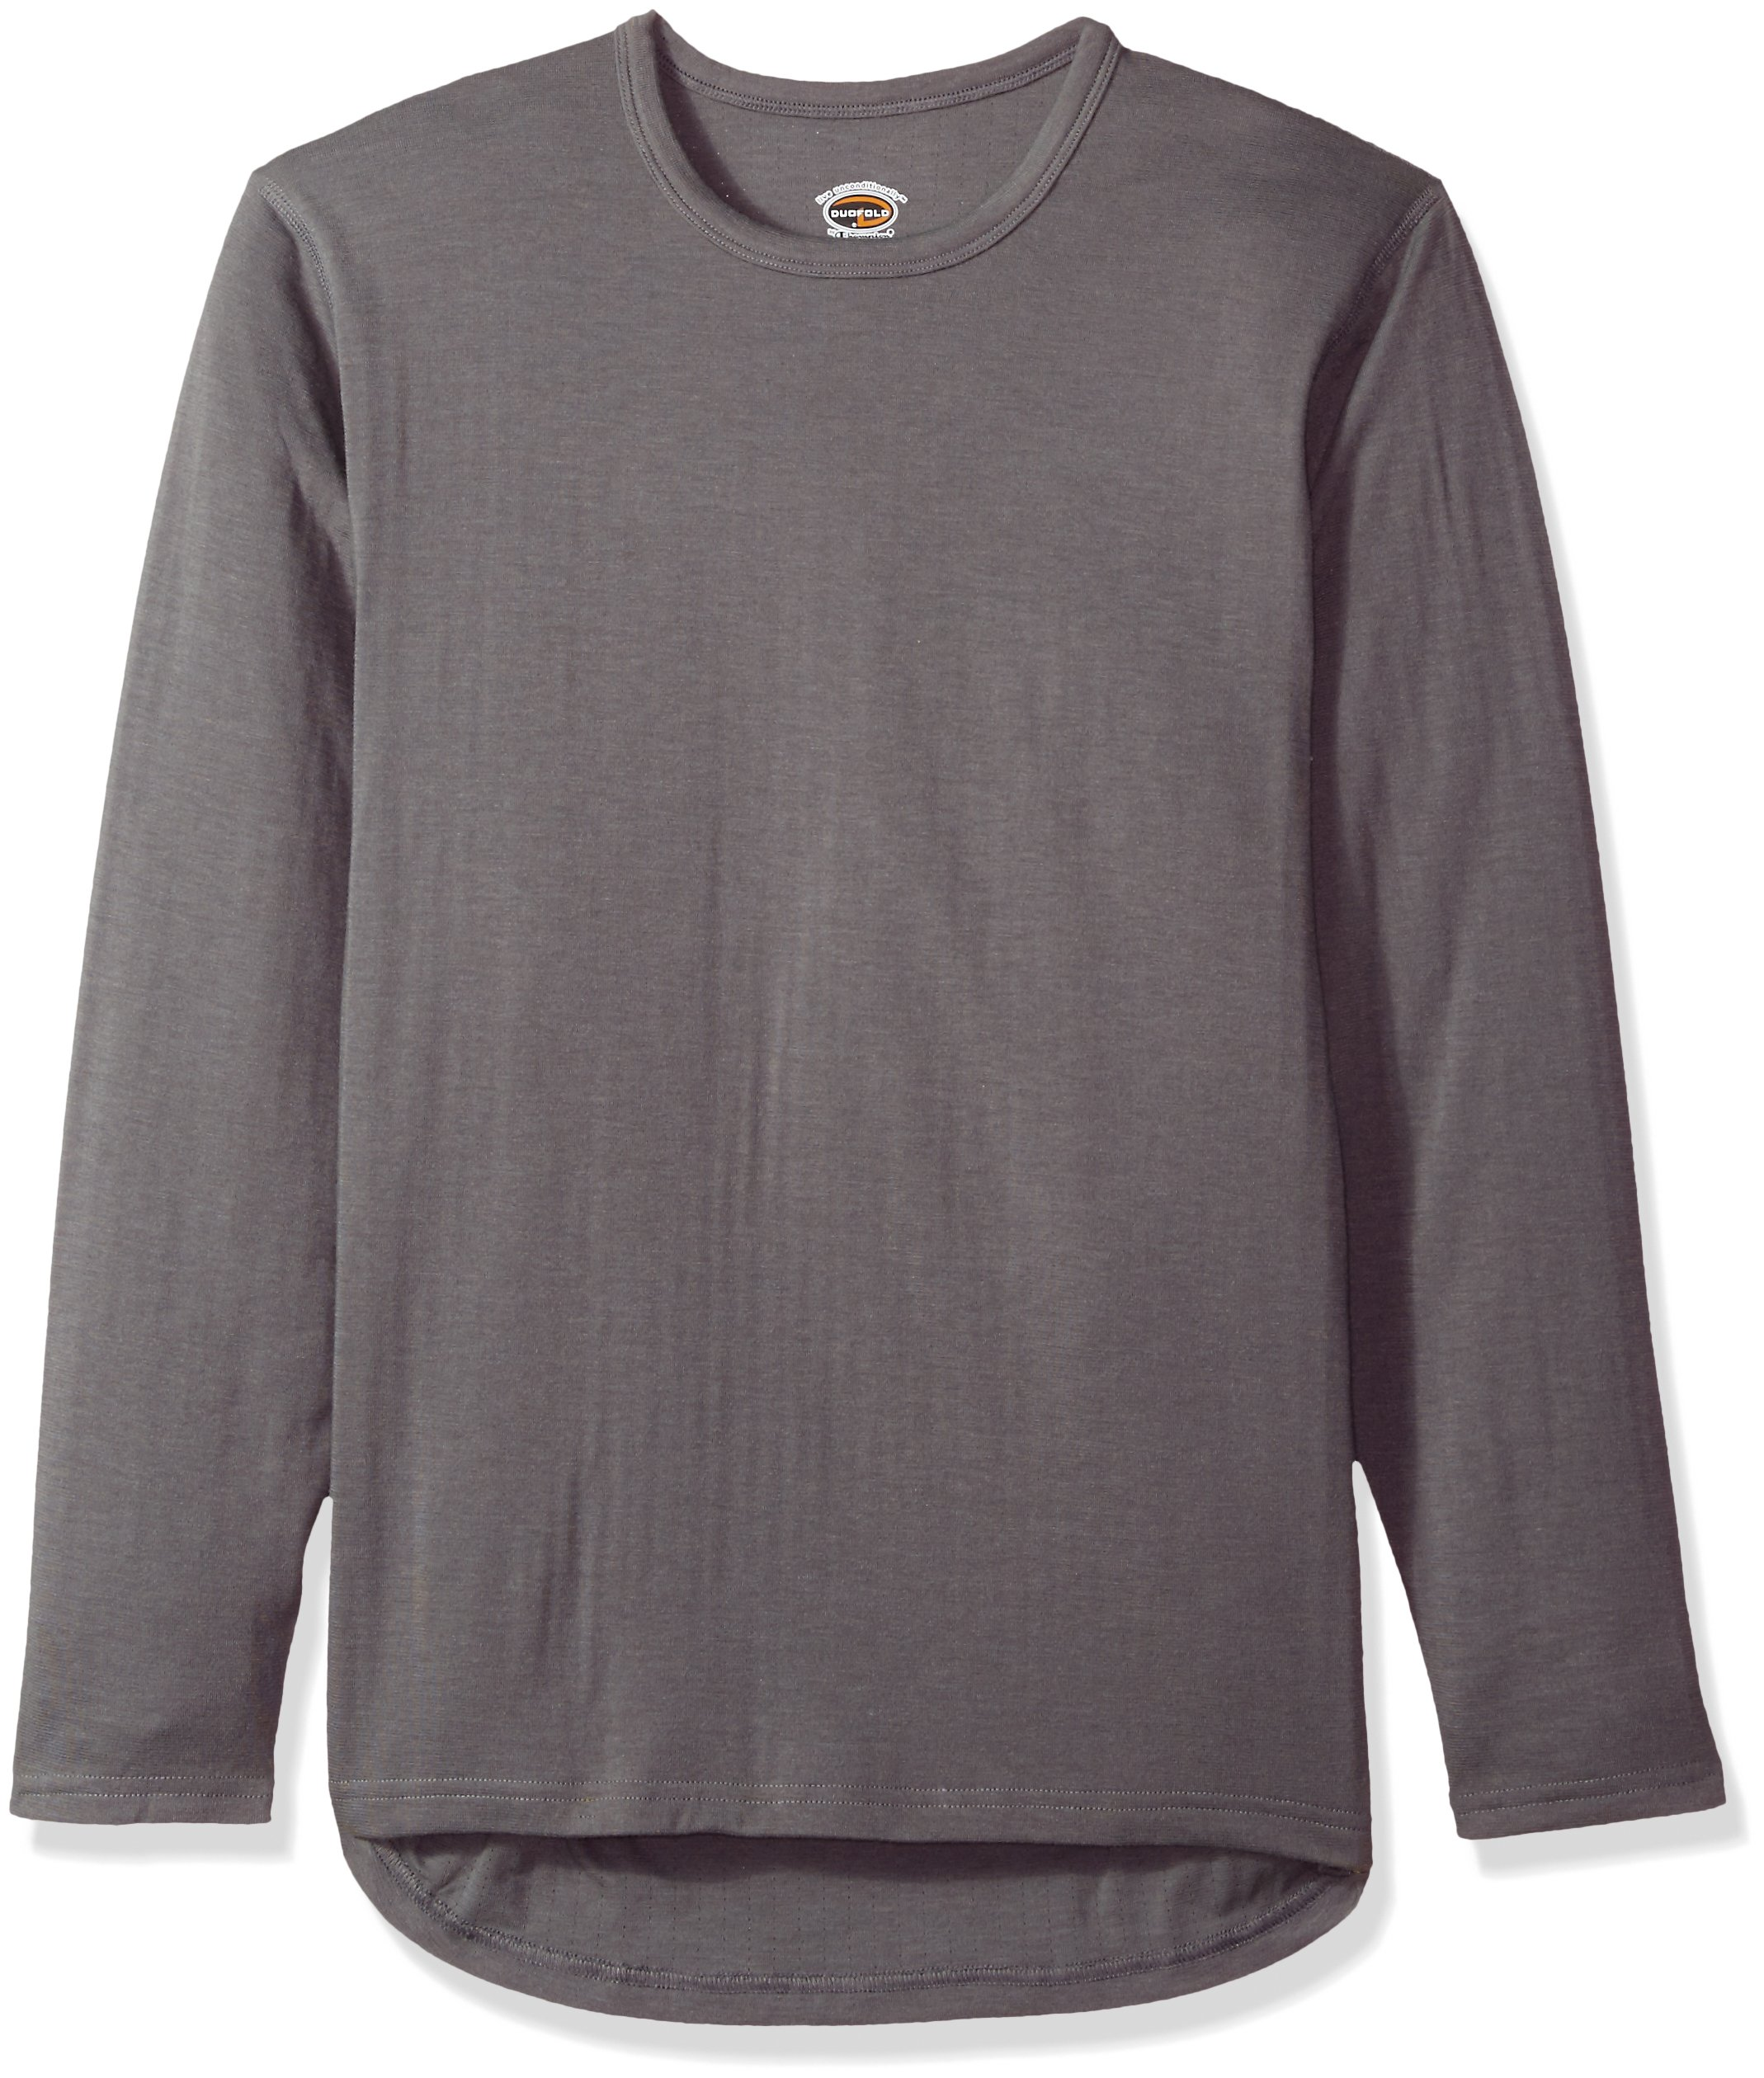 Duofold Men's Heavyweight Double-Layer Thermal Shirt, Thundering Gray, Large by Duofold